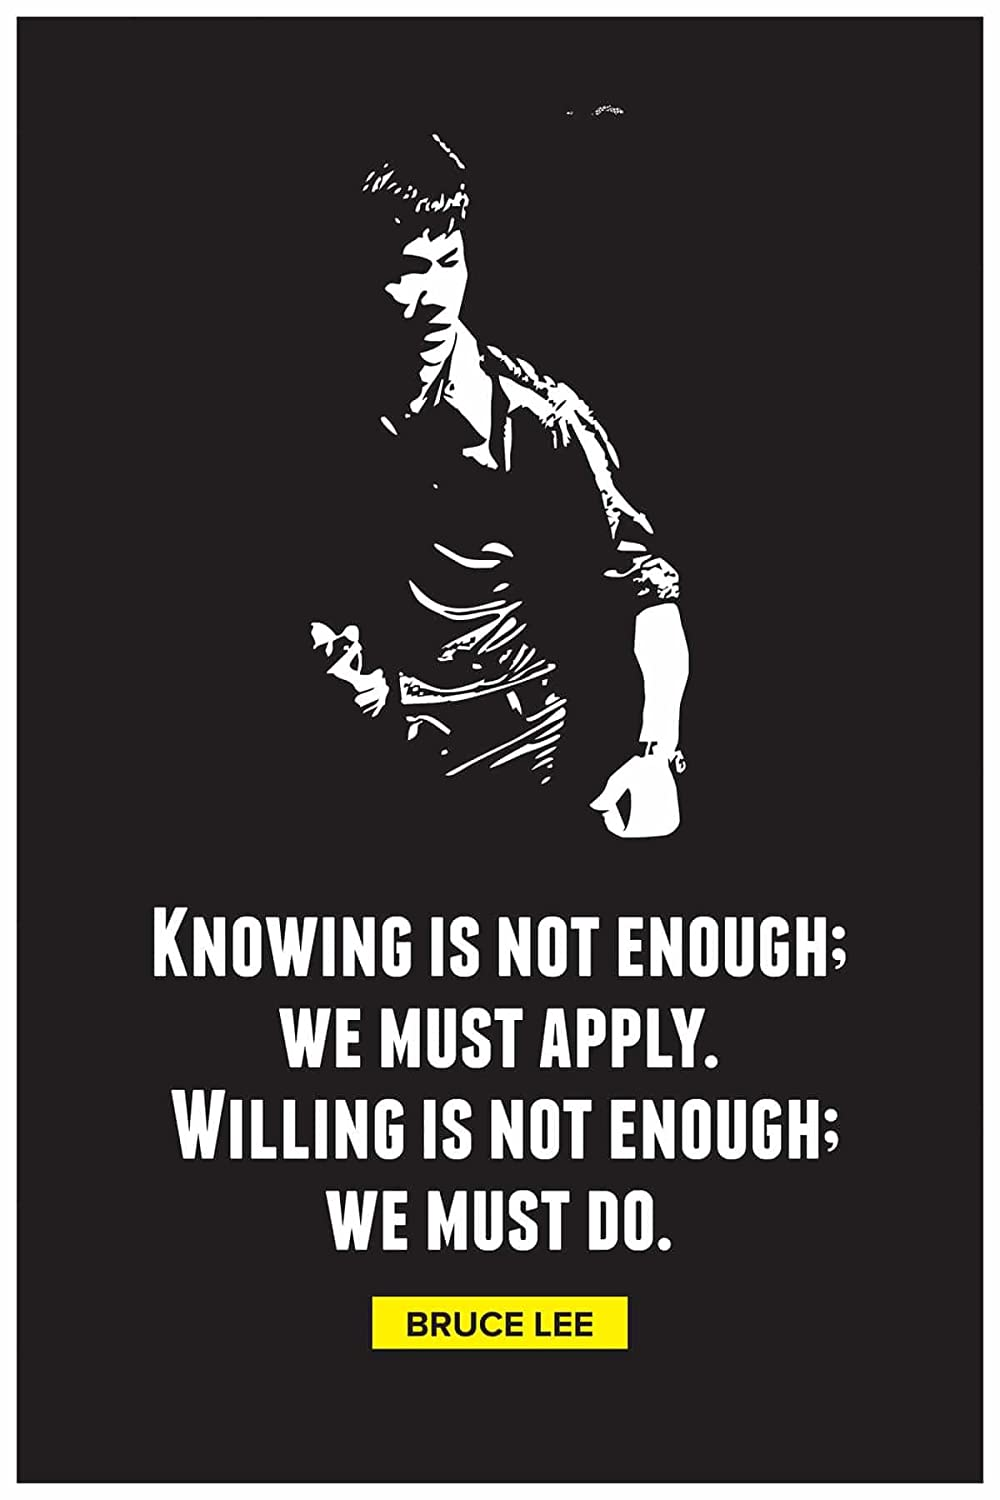 Inephos Paper Bruce Lee Knowing Is Not Enough Inspirational